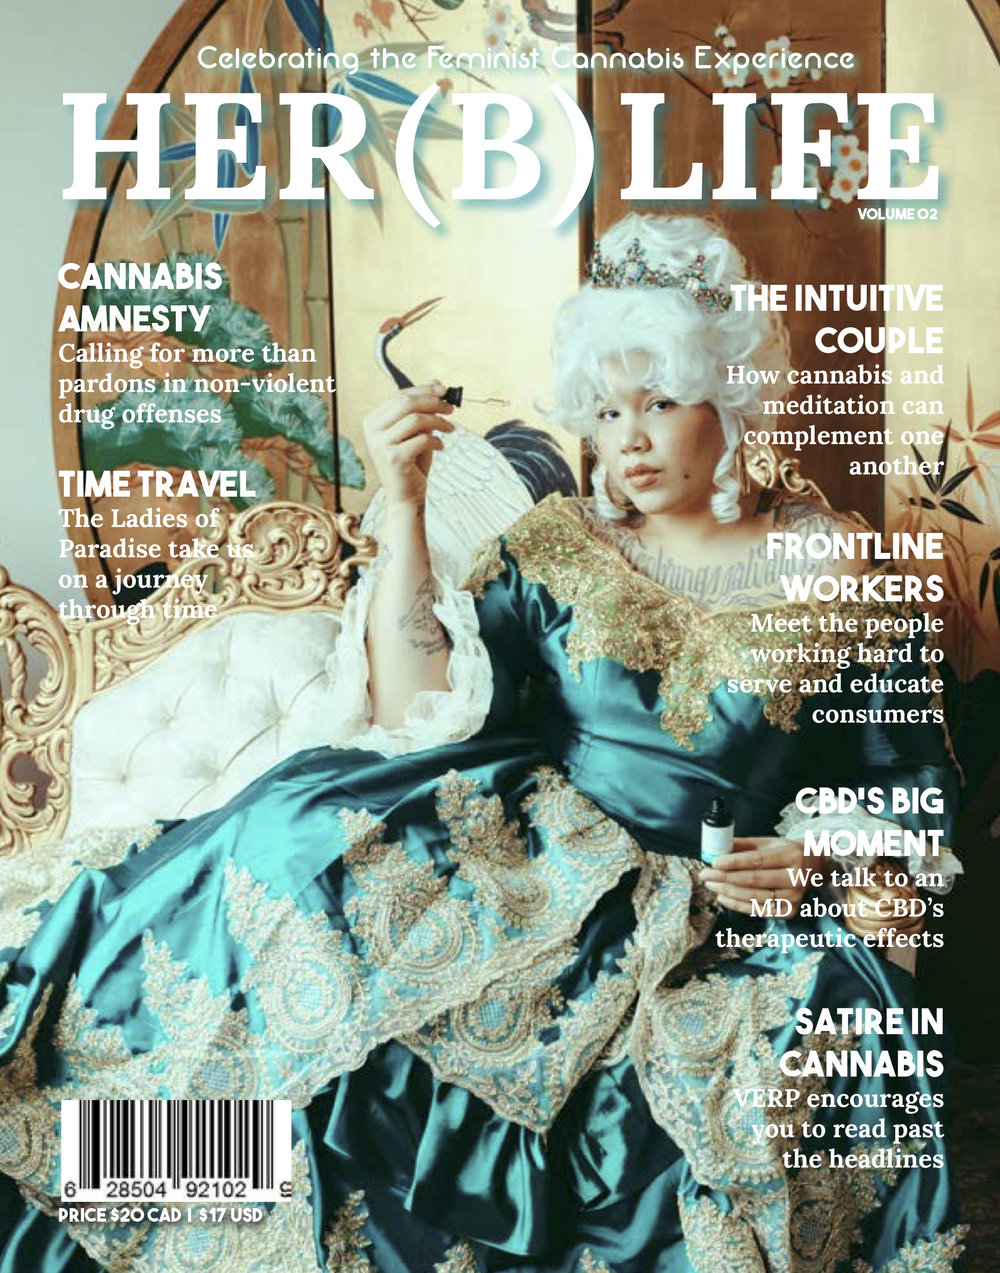 The Her(B) LifeVol. 02 - This issue explores topics such as the origin of the 420 movement, frontline workers in the cannabis space, amnesty for non-violent cannabis offenses, landrace strains and how meditation and cannabis compliment one another.We embark on a photographic time travel journey to delve into the many ways cannabis has been used over the course of history starting in ancient China and finishing up in modern day North America where legalization is gaining momentum.